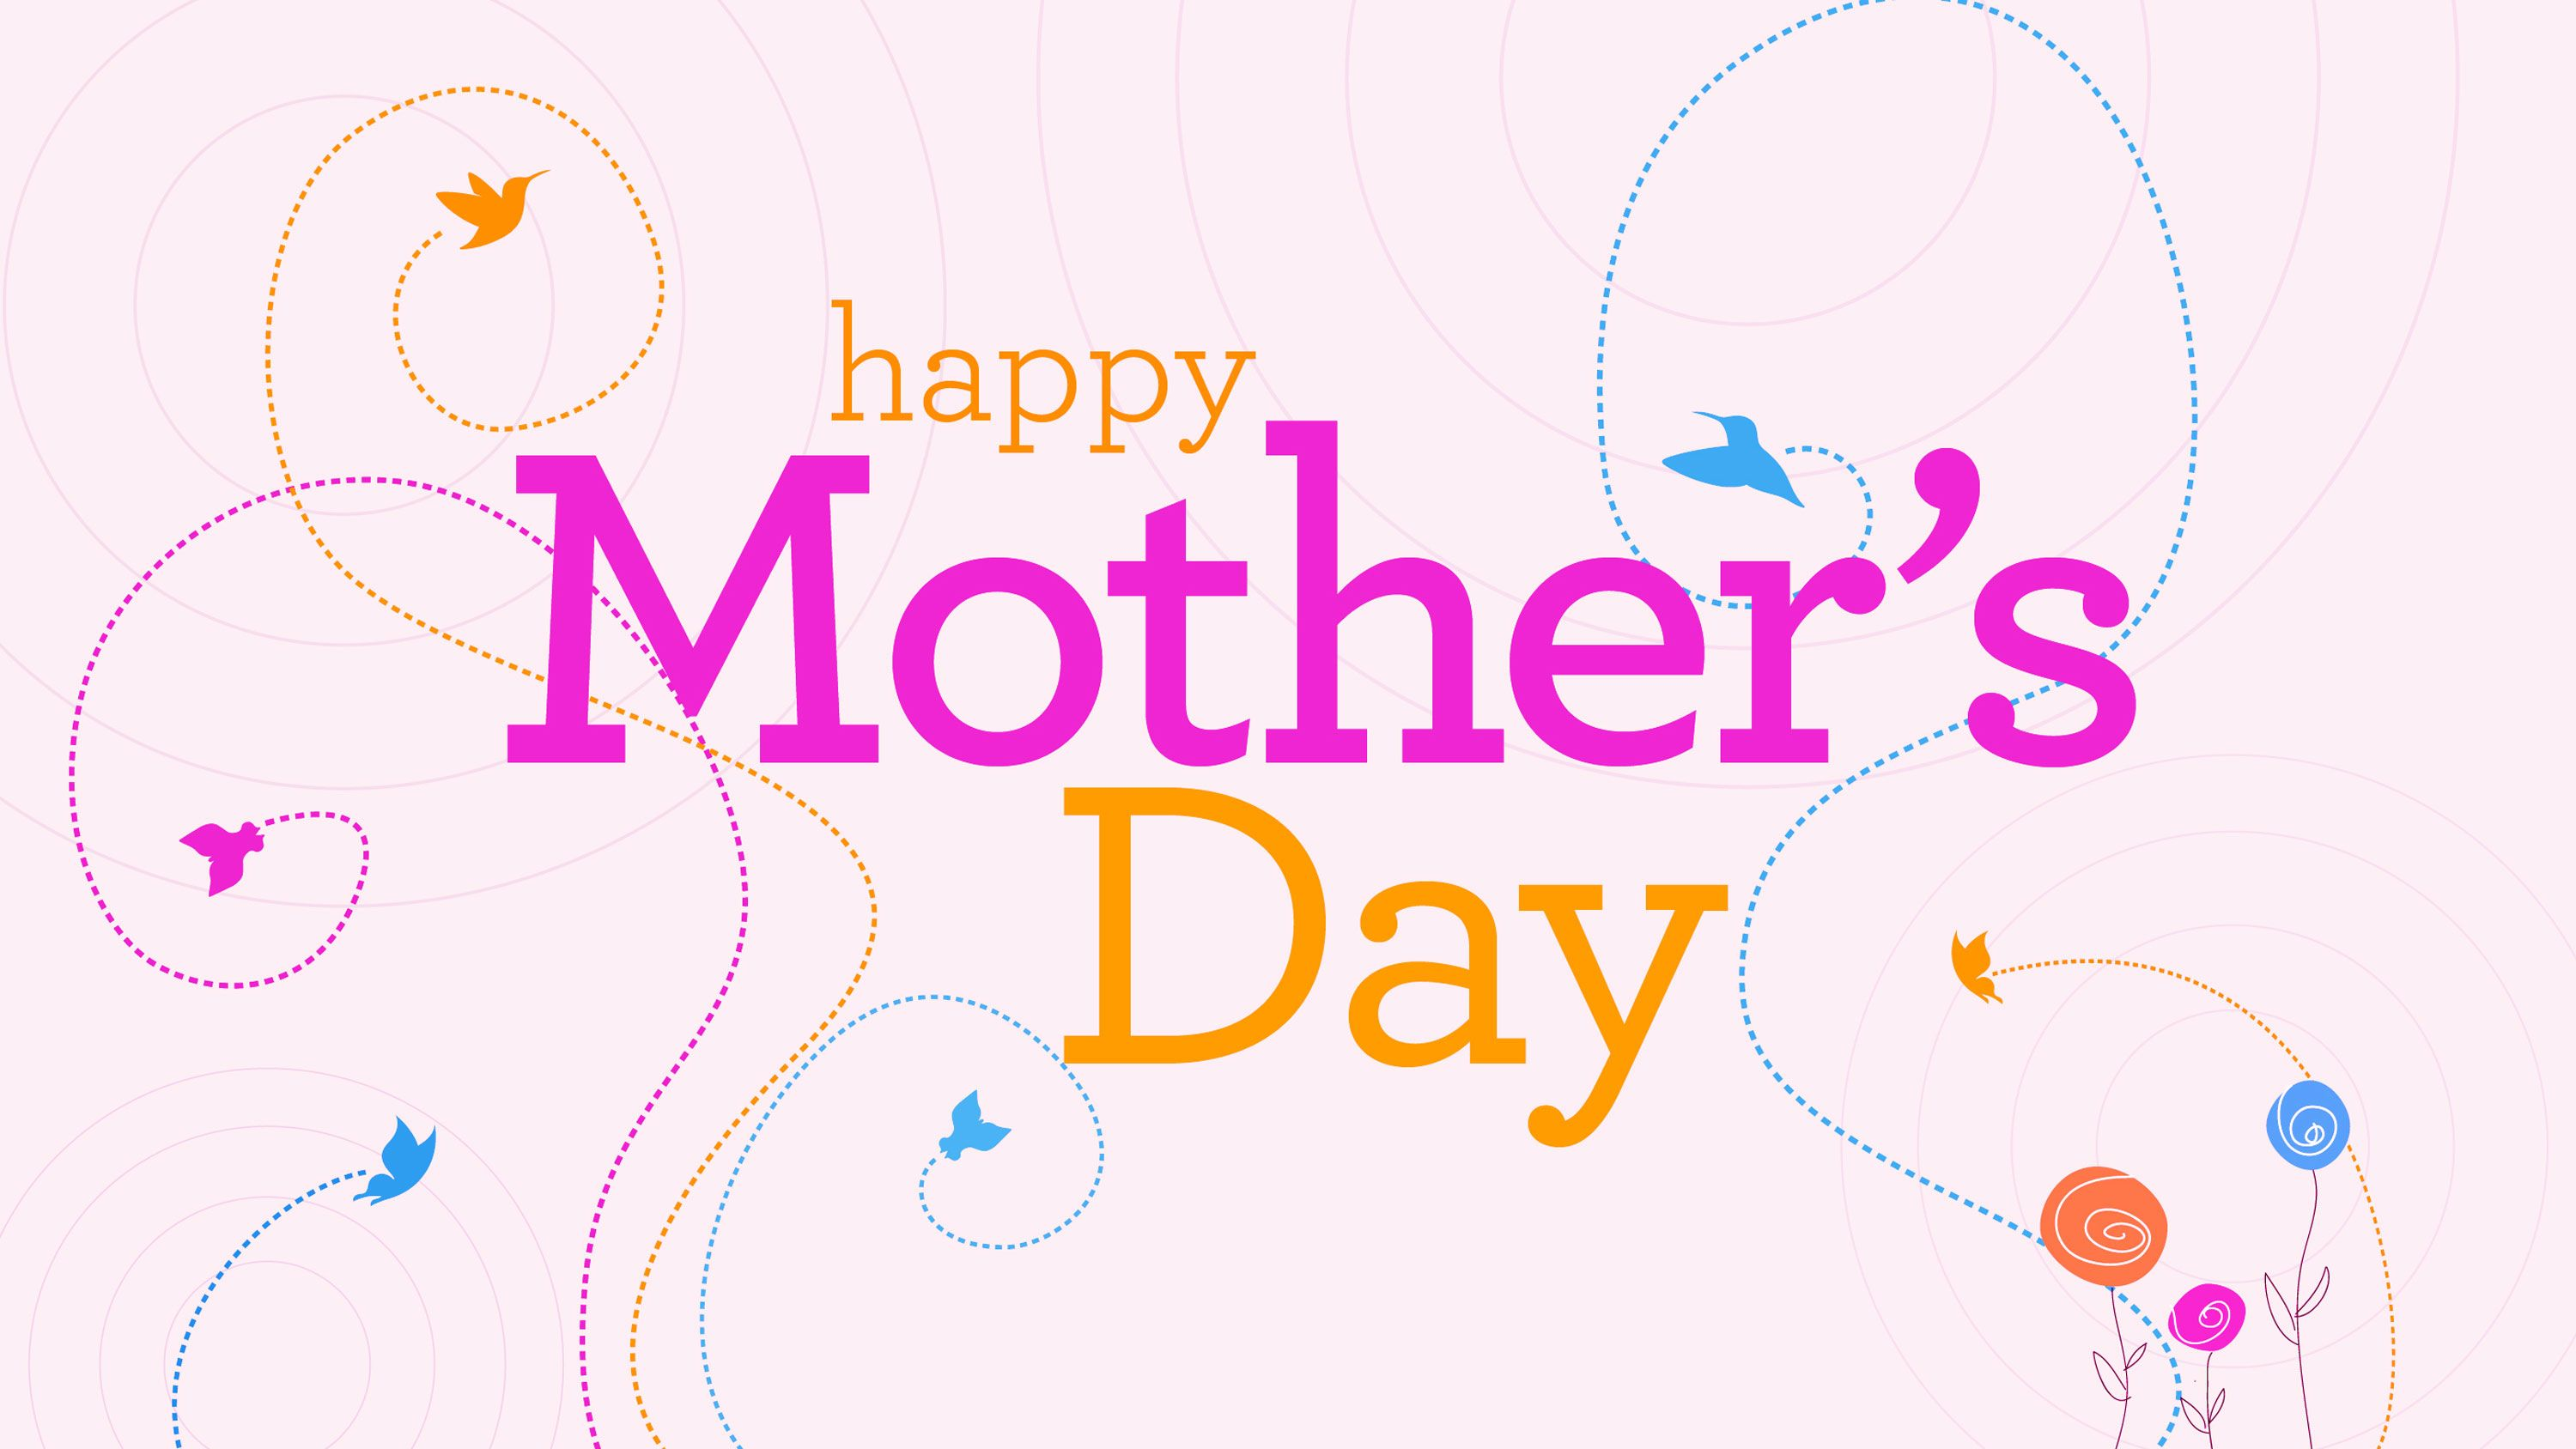 Celebrations 262 High Definition Wallpaper Happy Mothers Day Messages Happy Mothers Day Wallpaper Mother Day Wishes